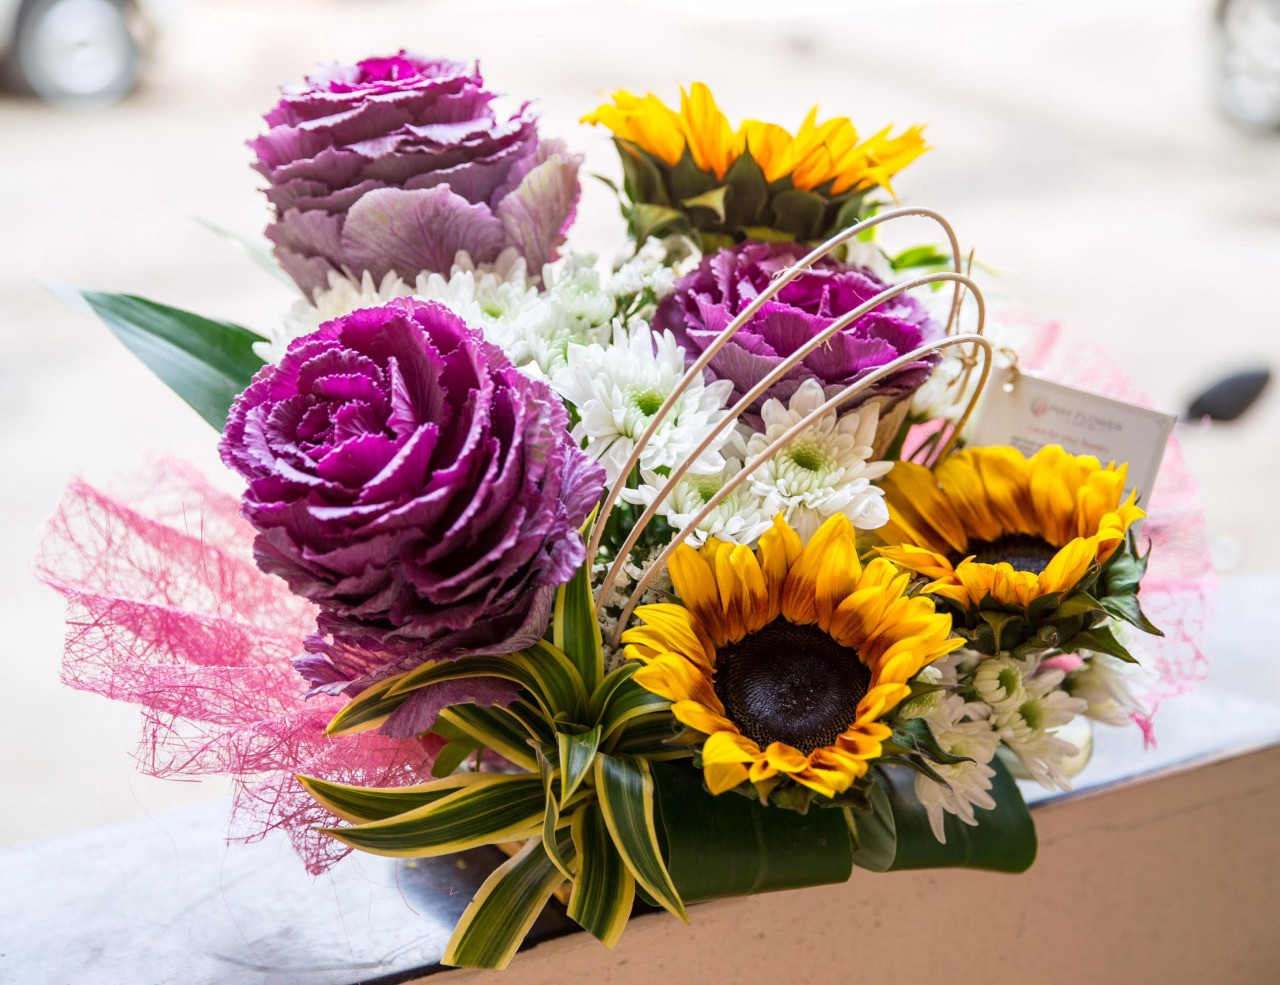 How online flower delivery in mumbai has increased popularity of online flower delivery in mumbai guarantees customers a strict quality controlled delivery of flowers that are fresh and fragrant and are perfect for izmirmasajfo